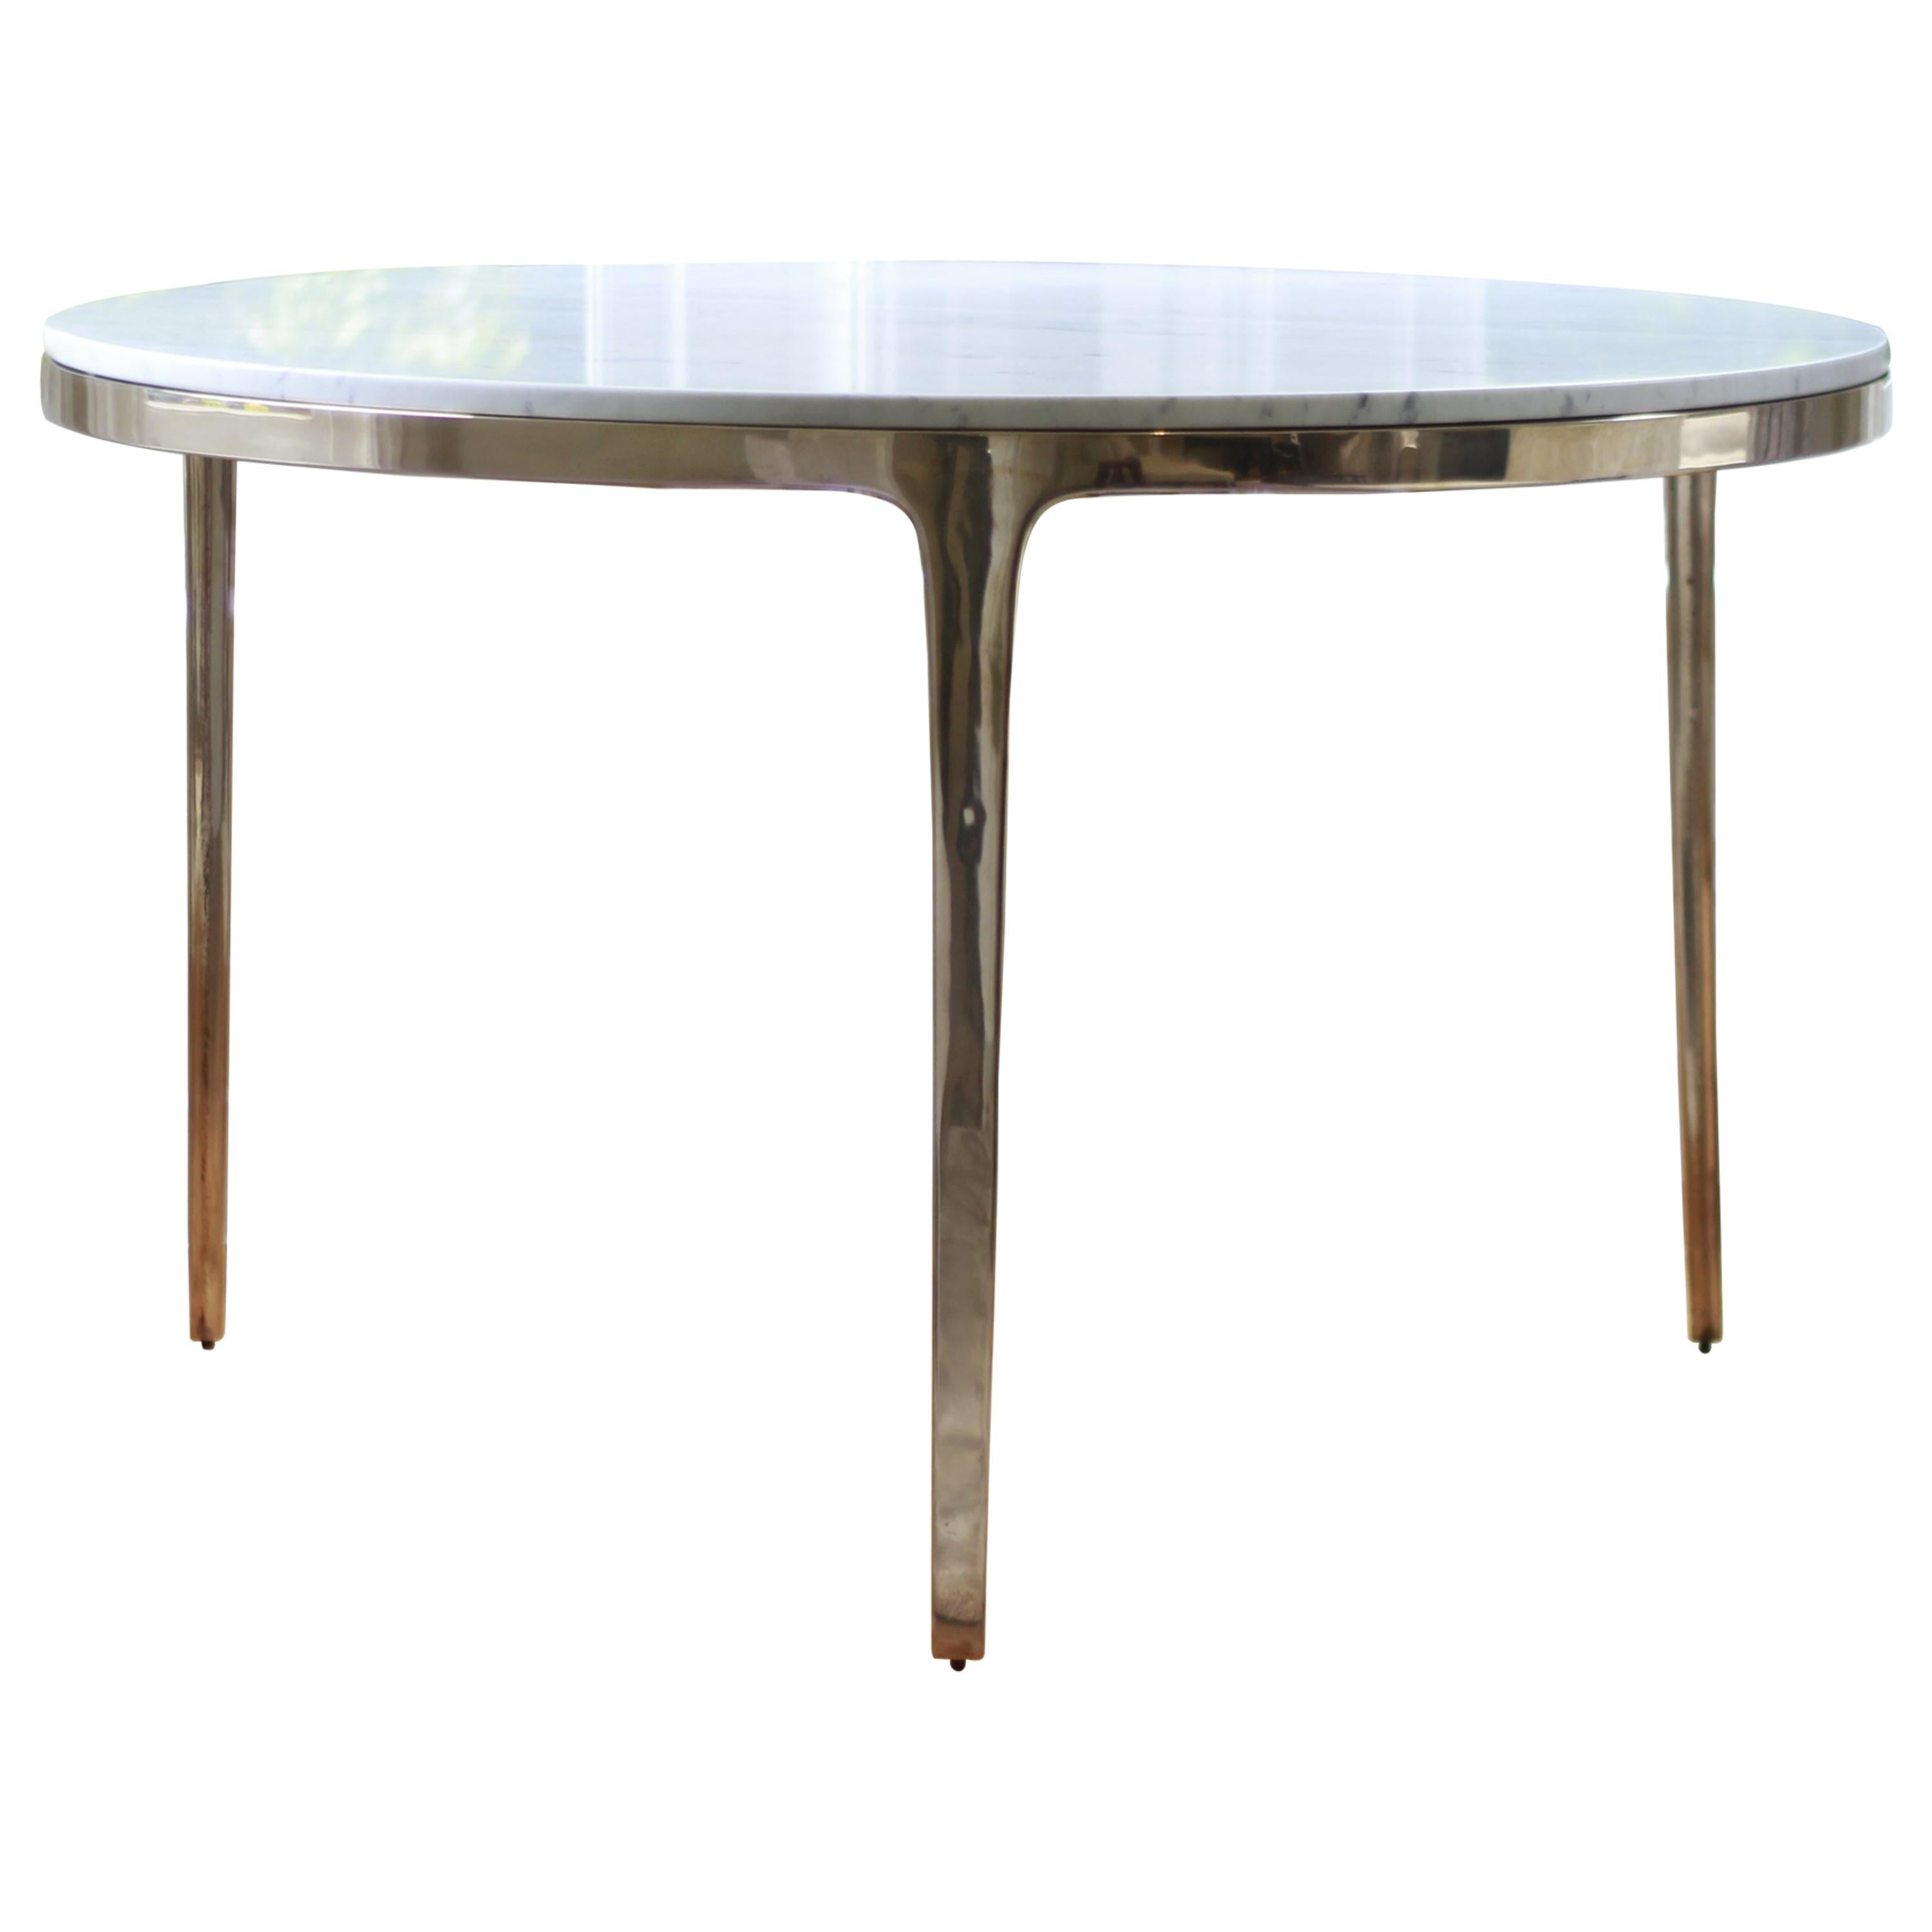 Barbera 'Bronze' Round Table, Modern Solid Bronze Base with Stone Top